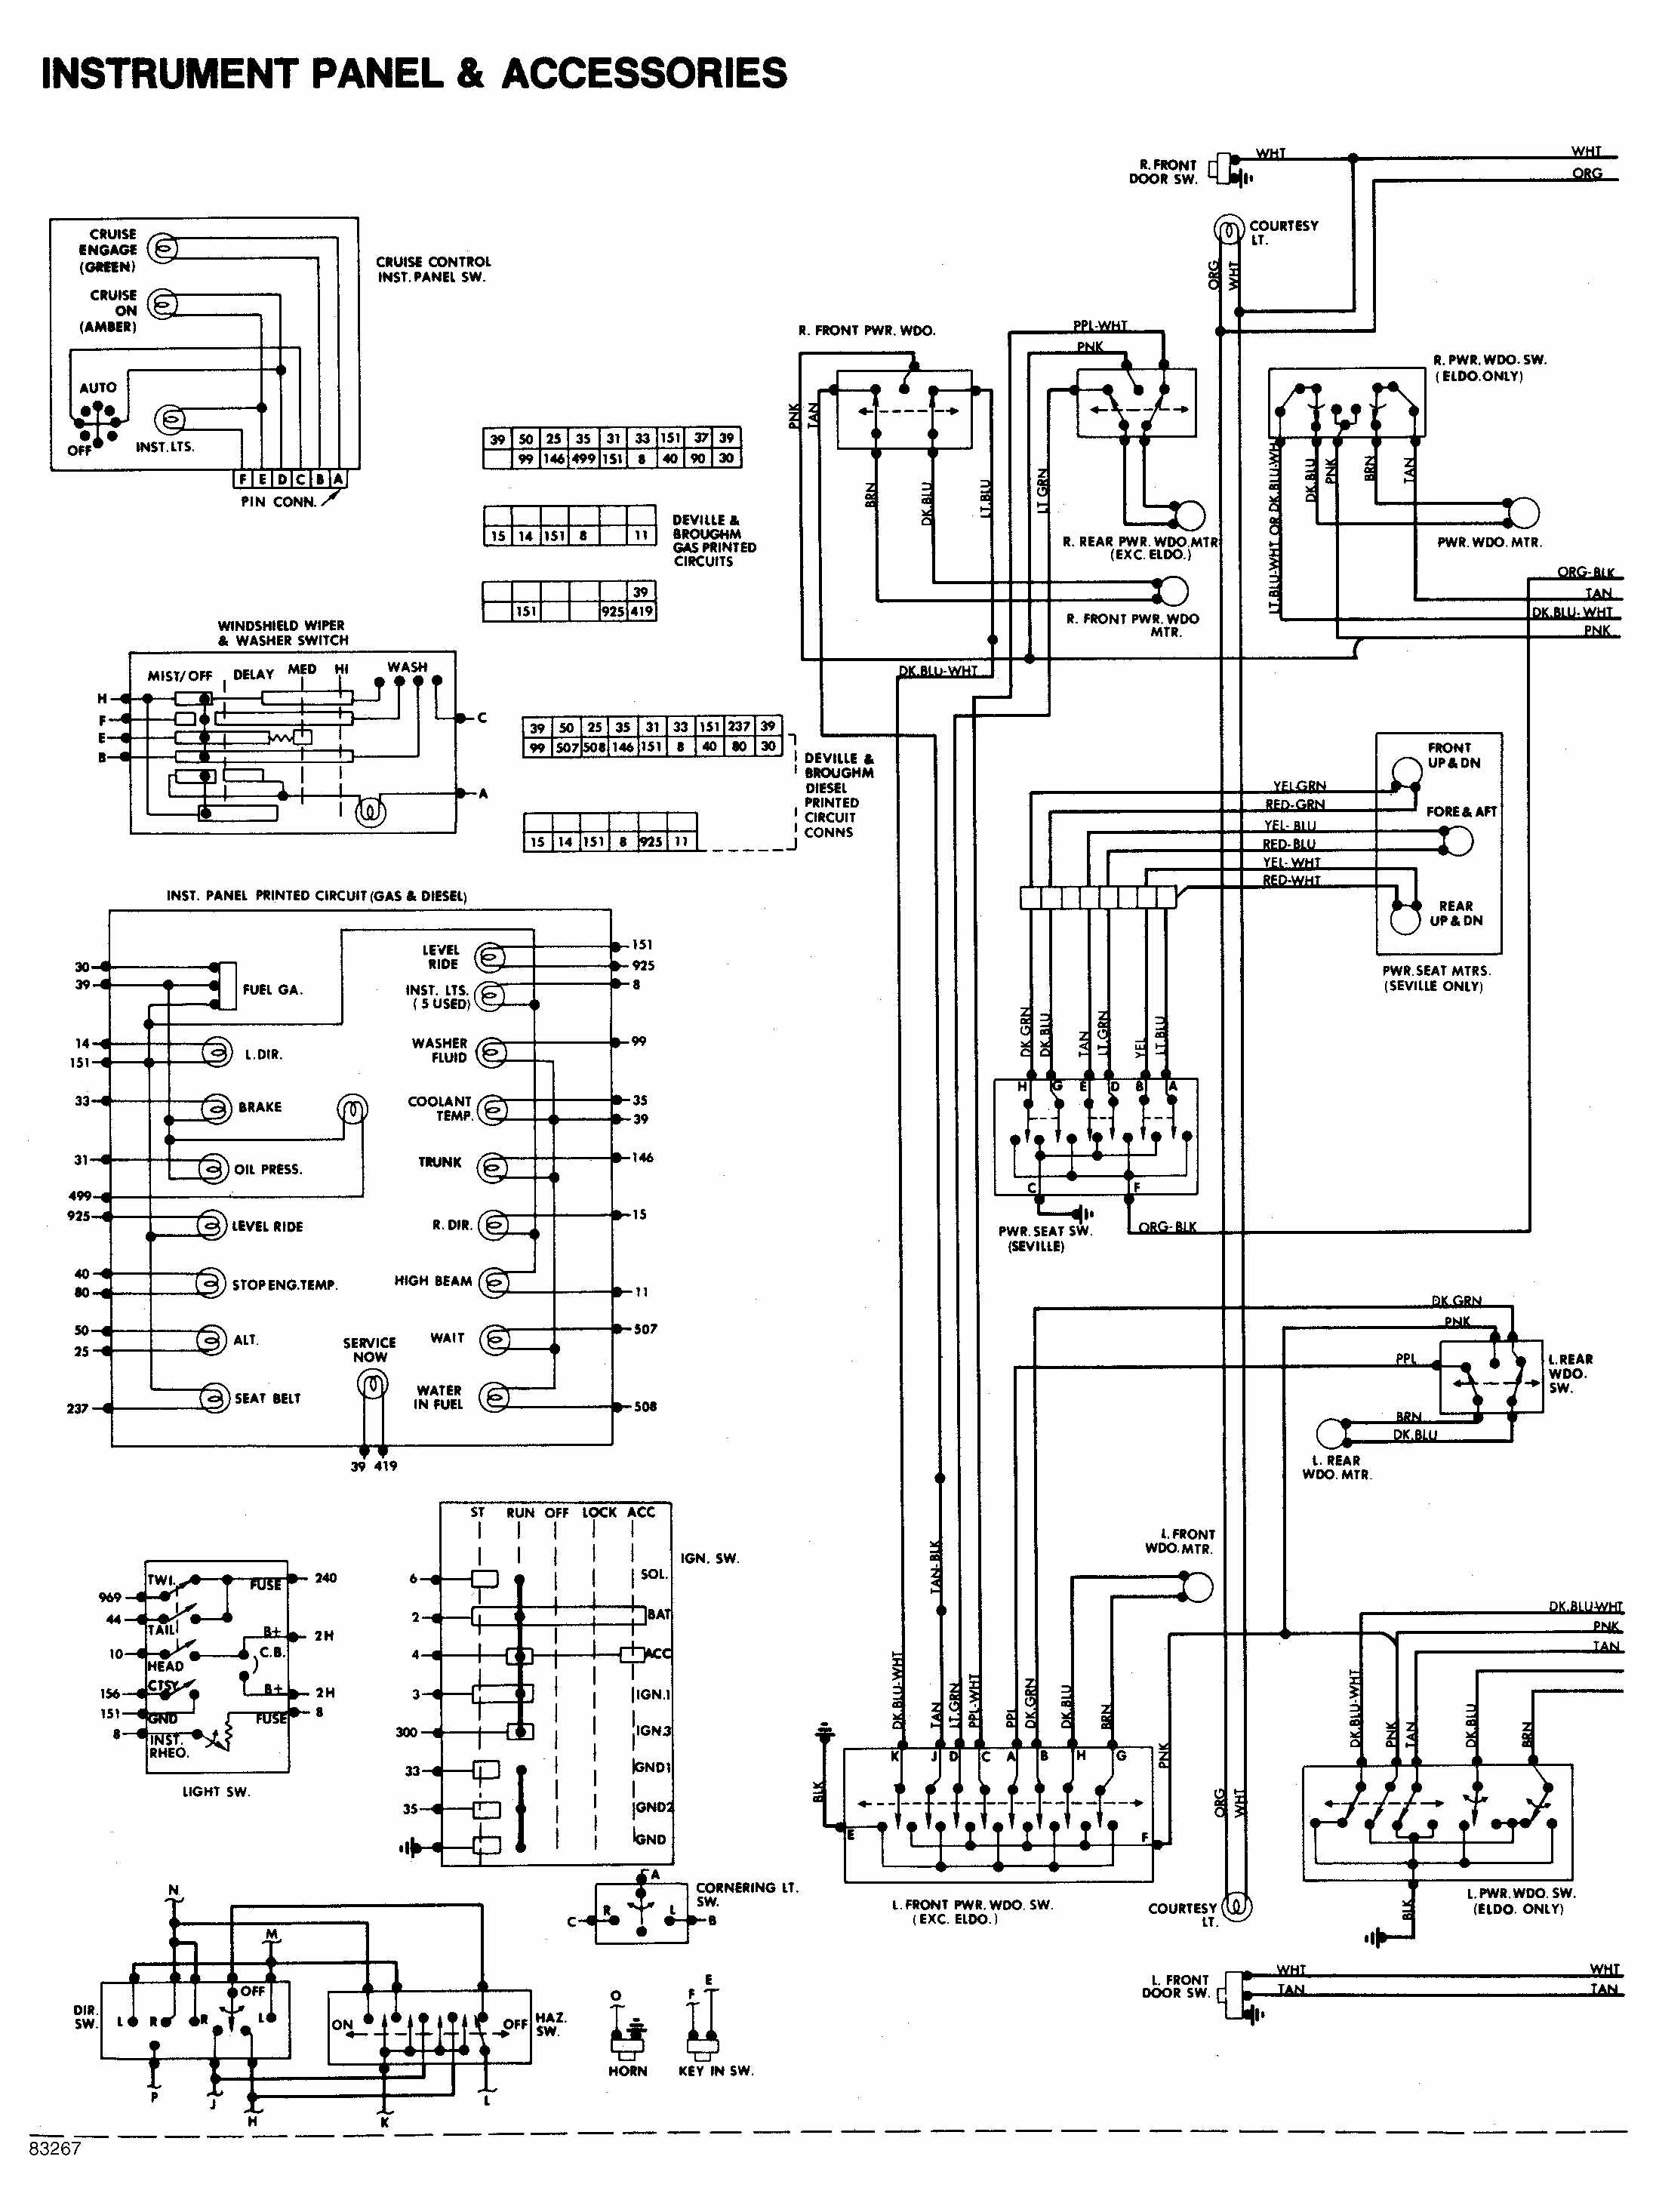 1984 dodge wiring harness diagram